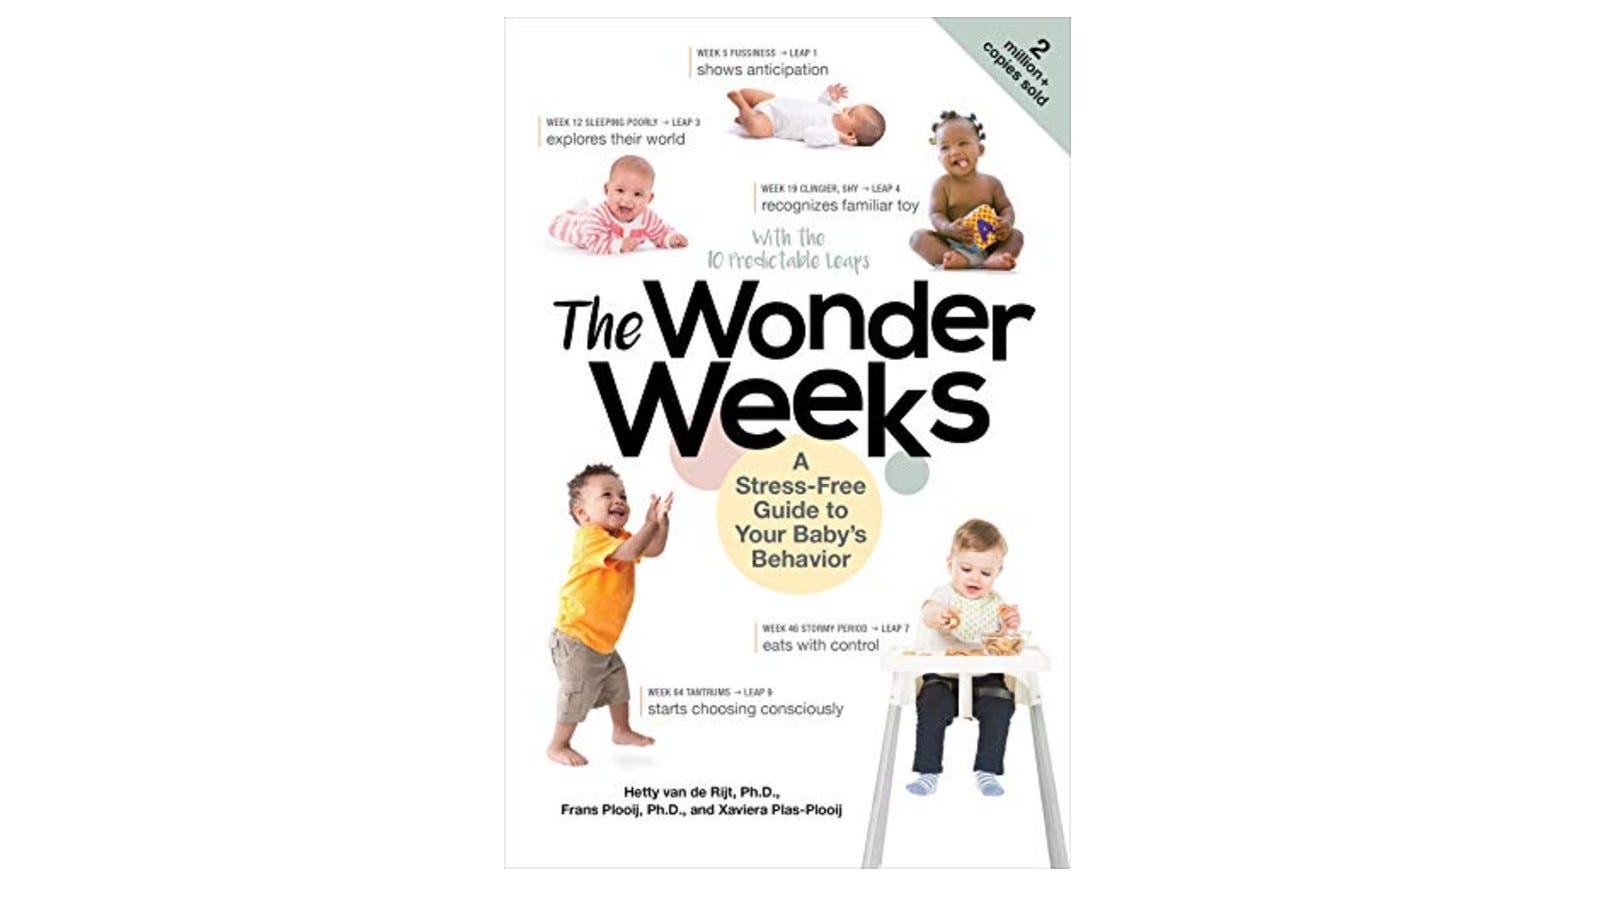 copy of The Wonder Weeks books featuring photos of different babies